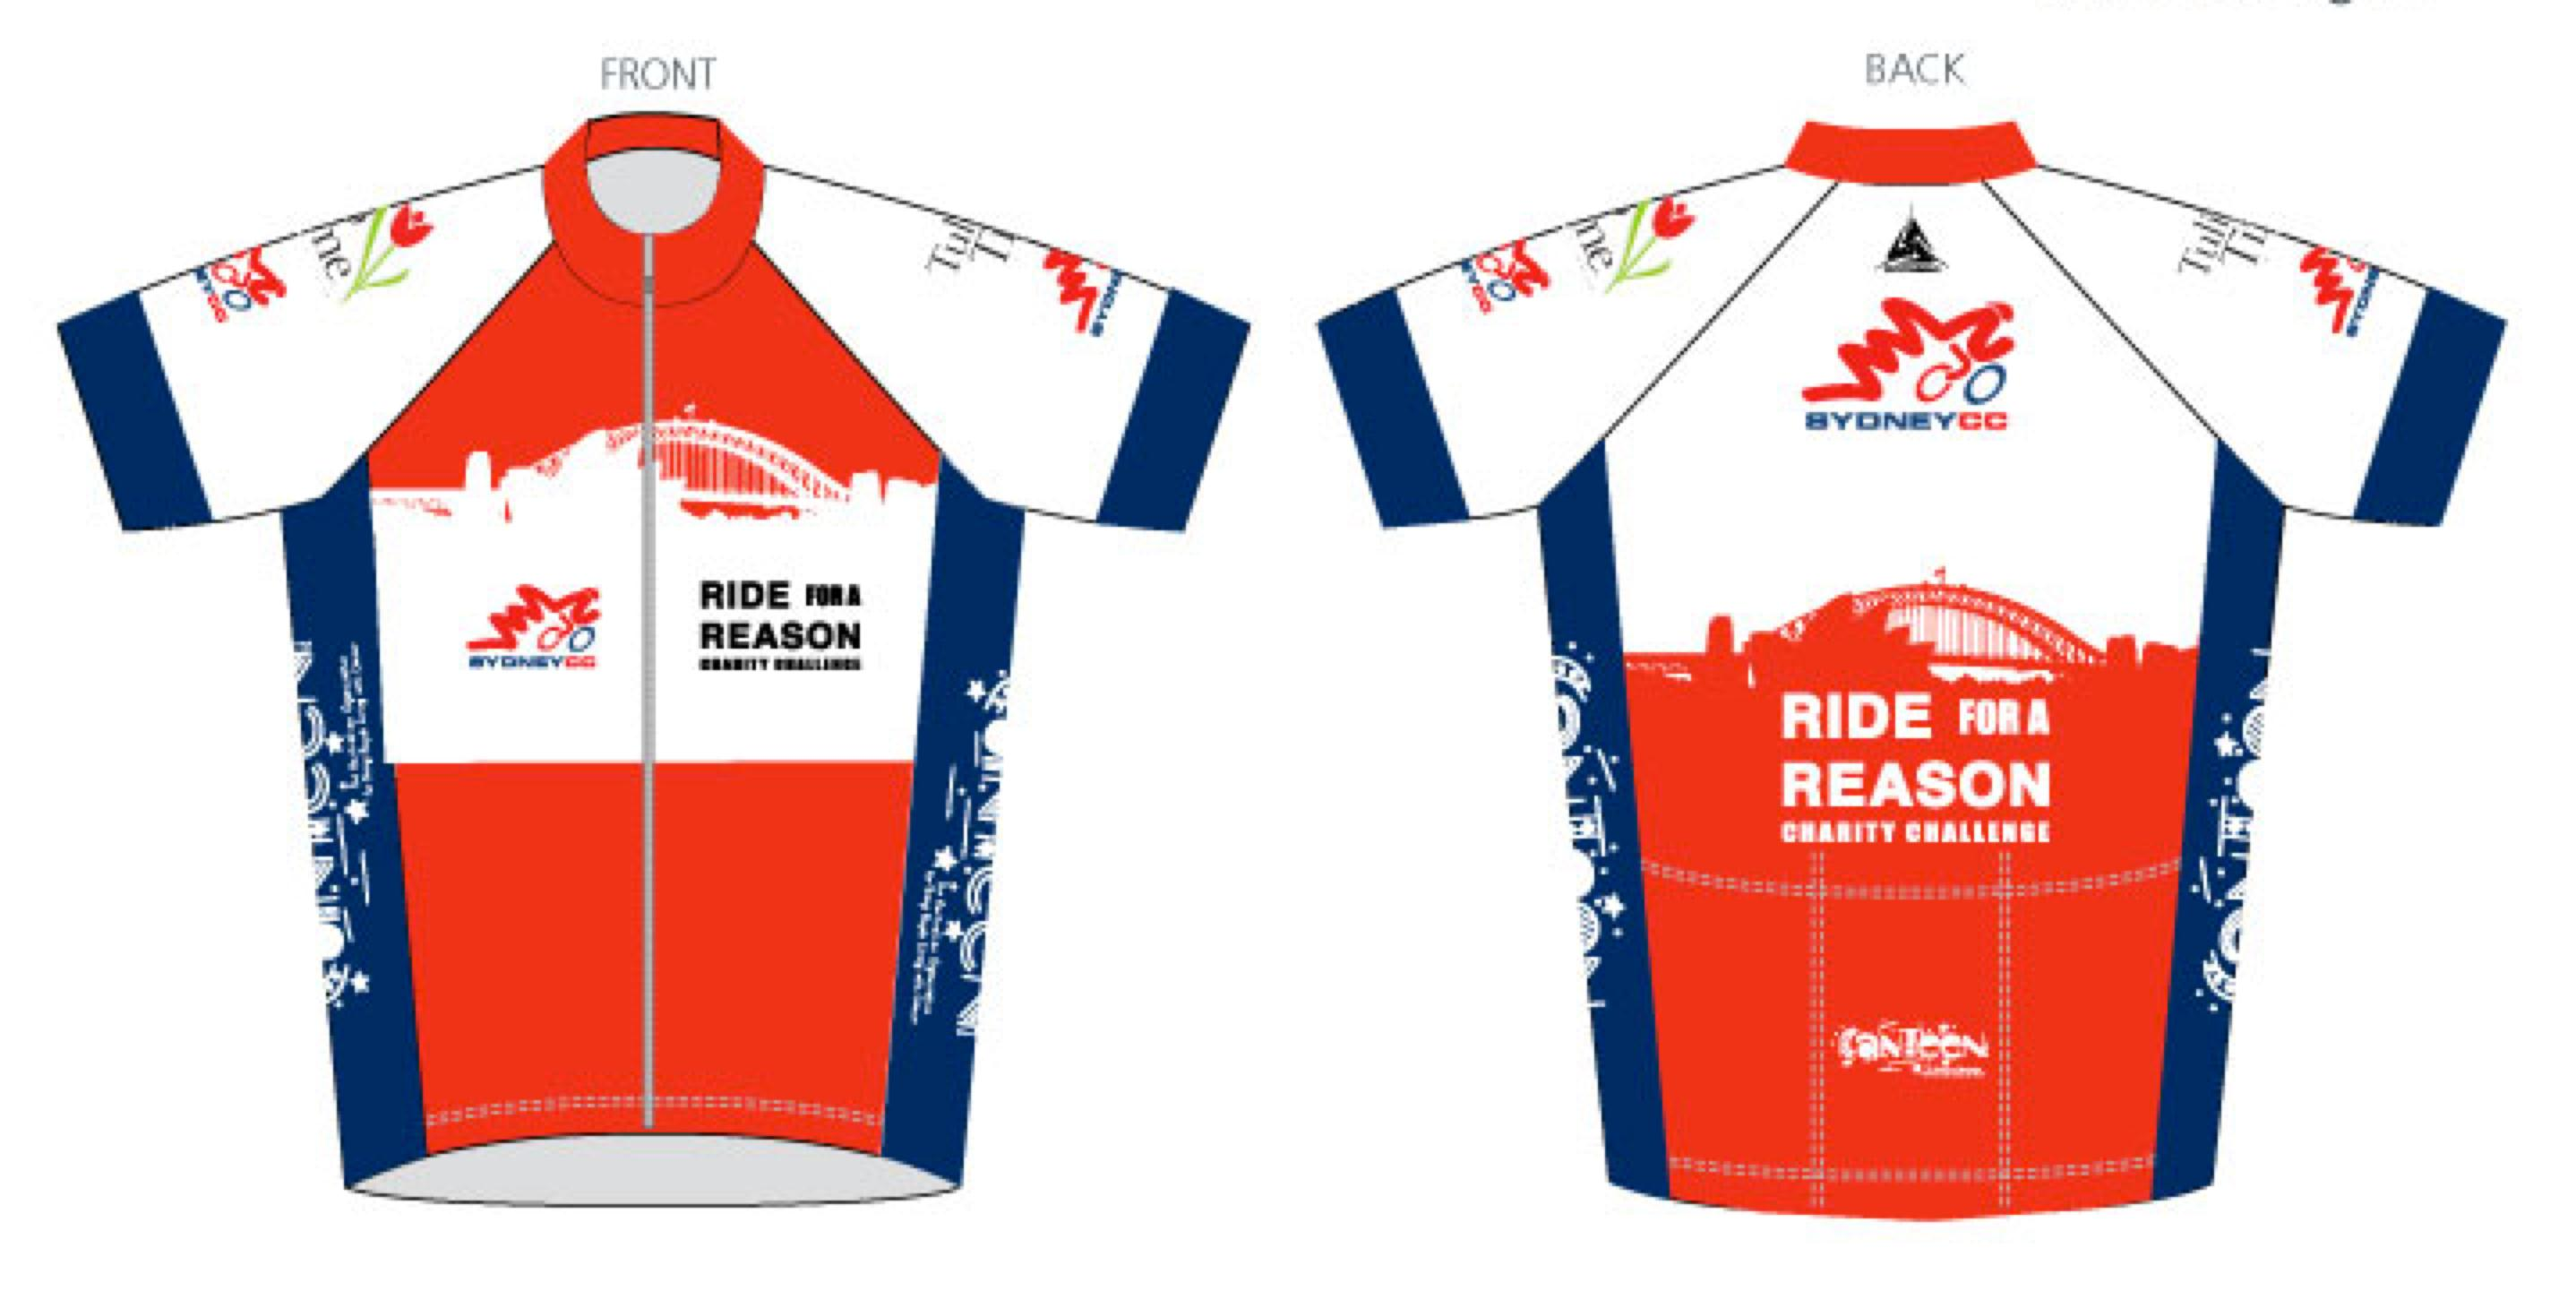 Ride for a Reason 2013 jersey design